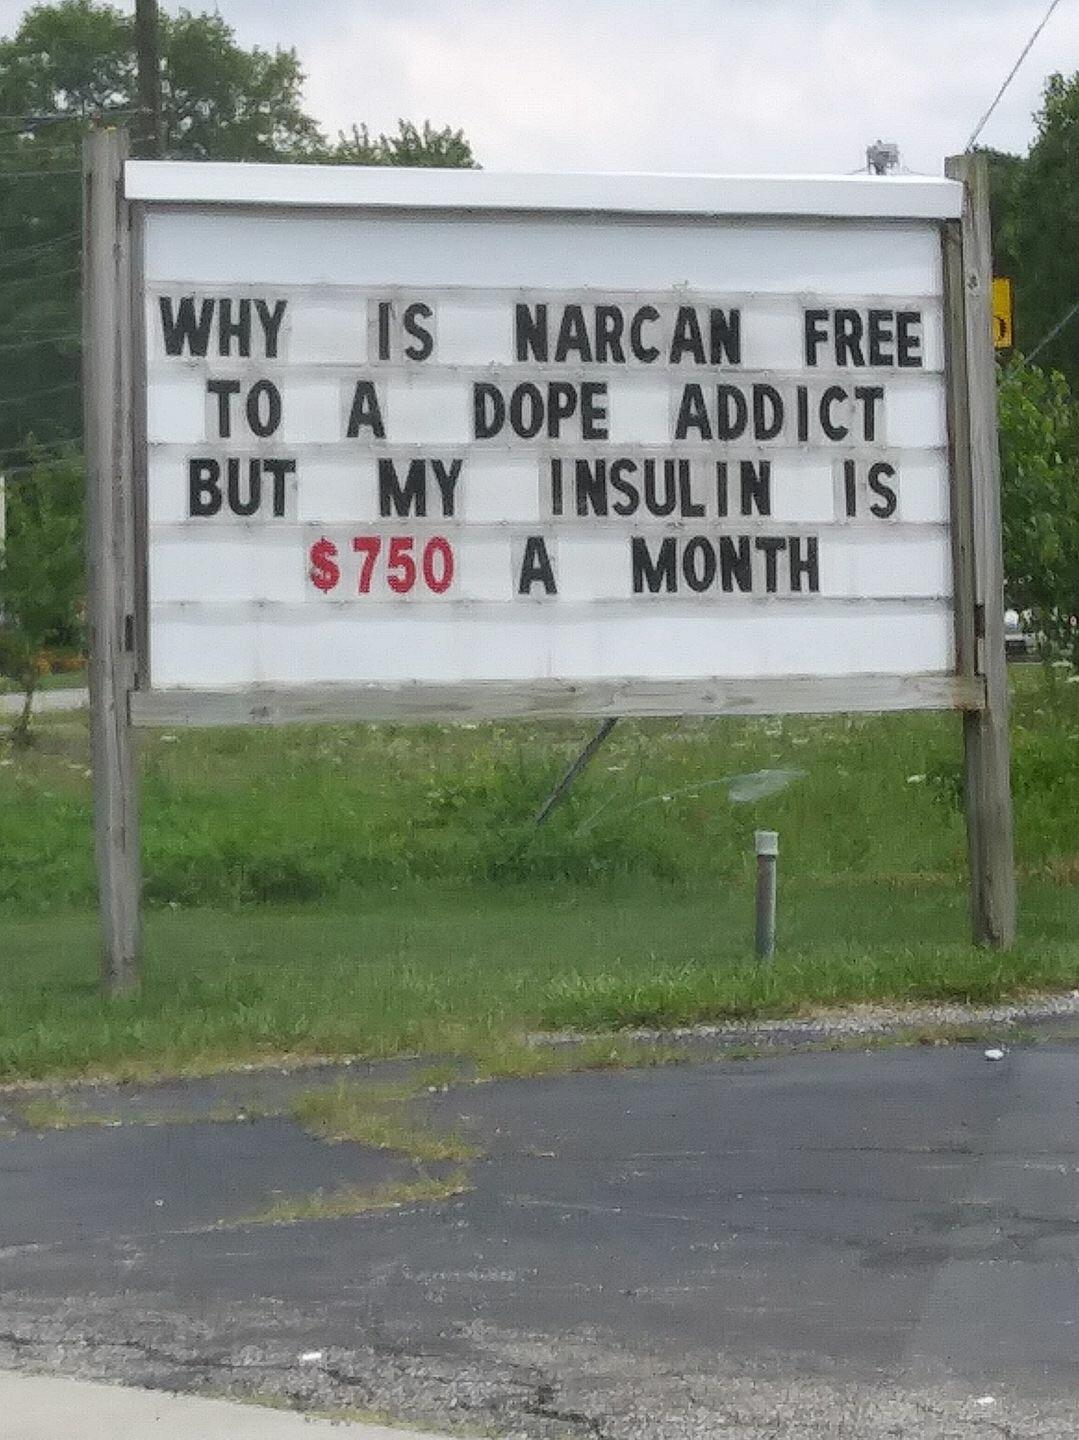 why is narcan free?